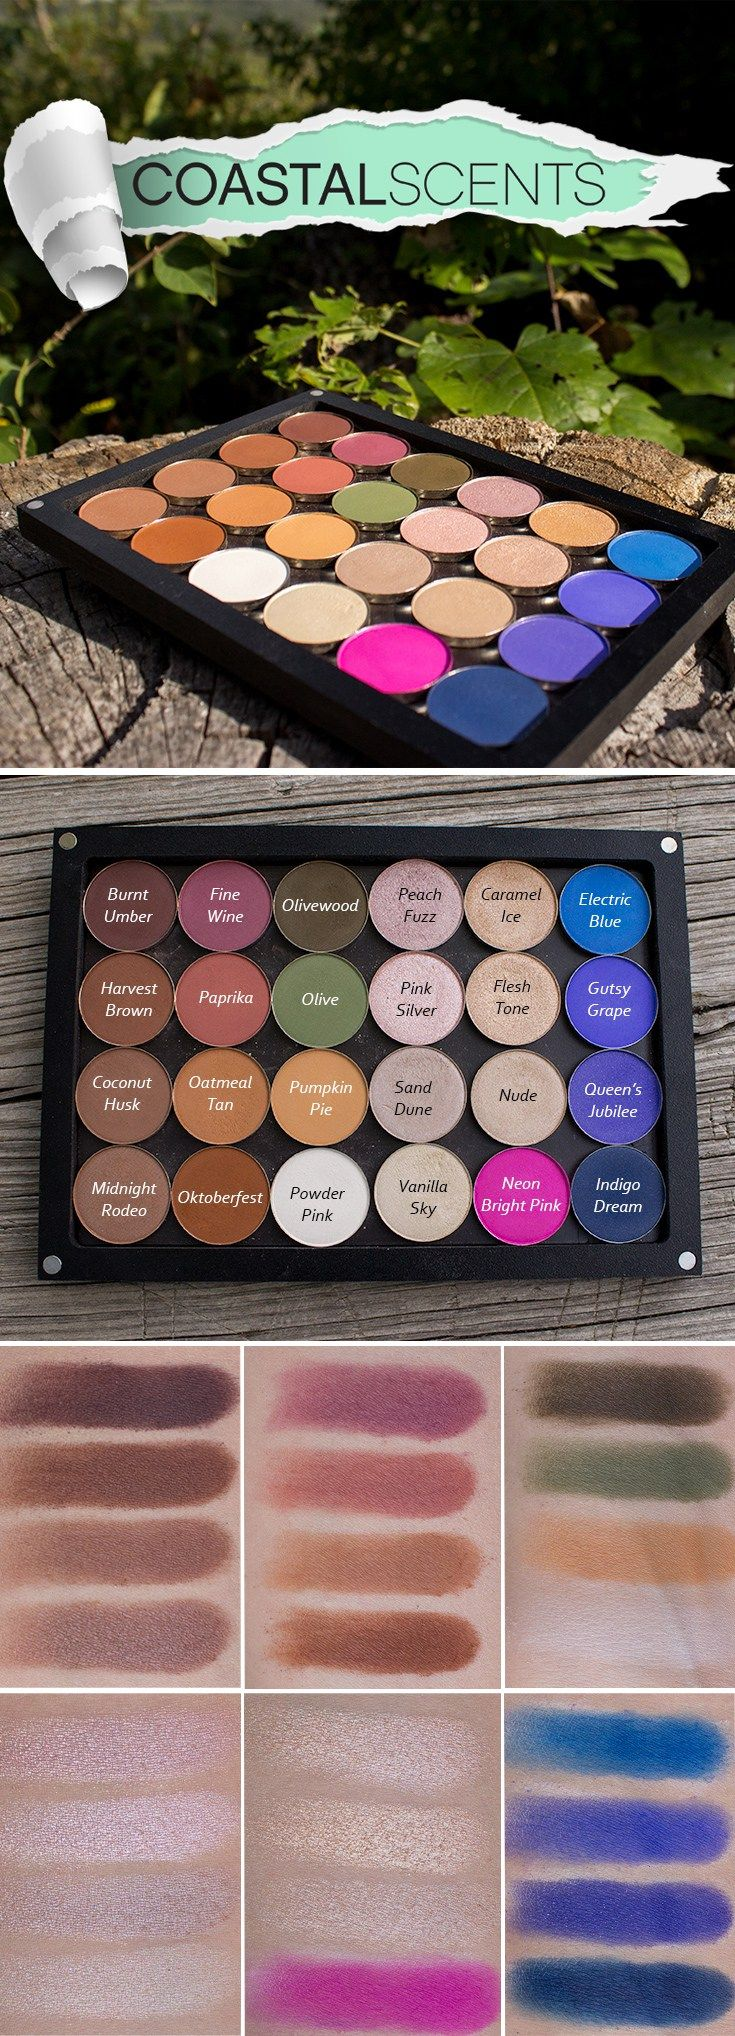 Coastal Scents Hot Pots review and swatches                                                                                                                                                                                 More